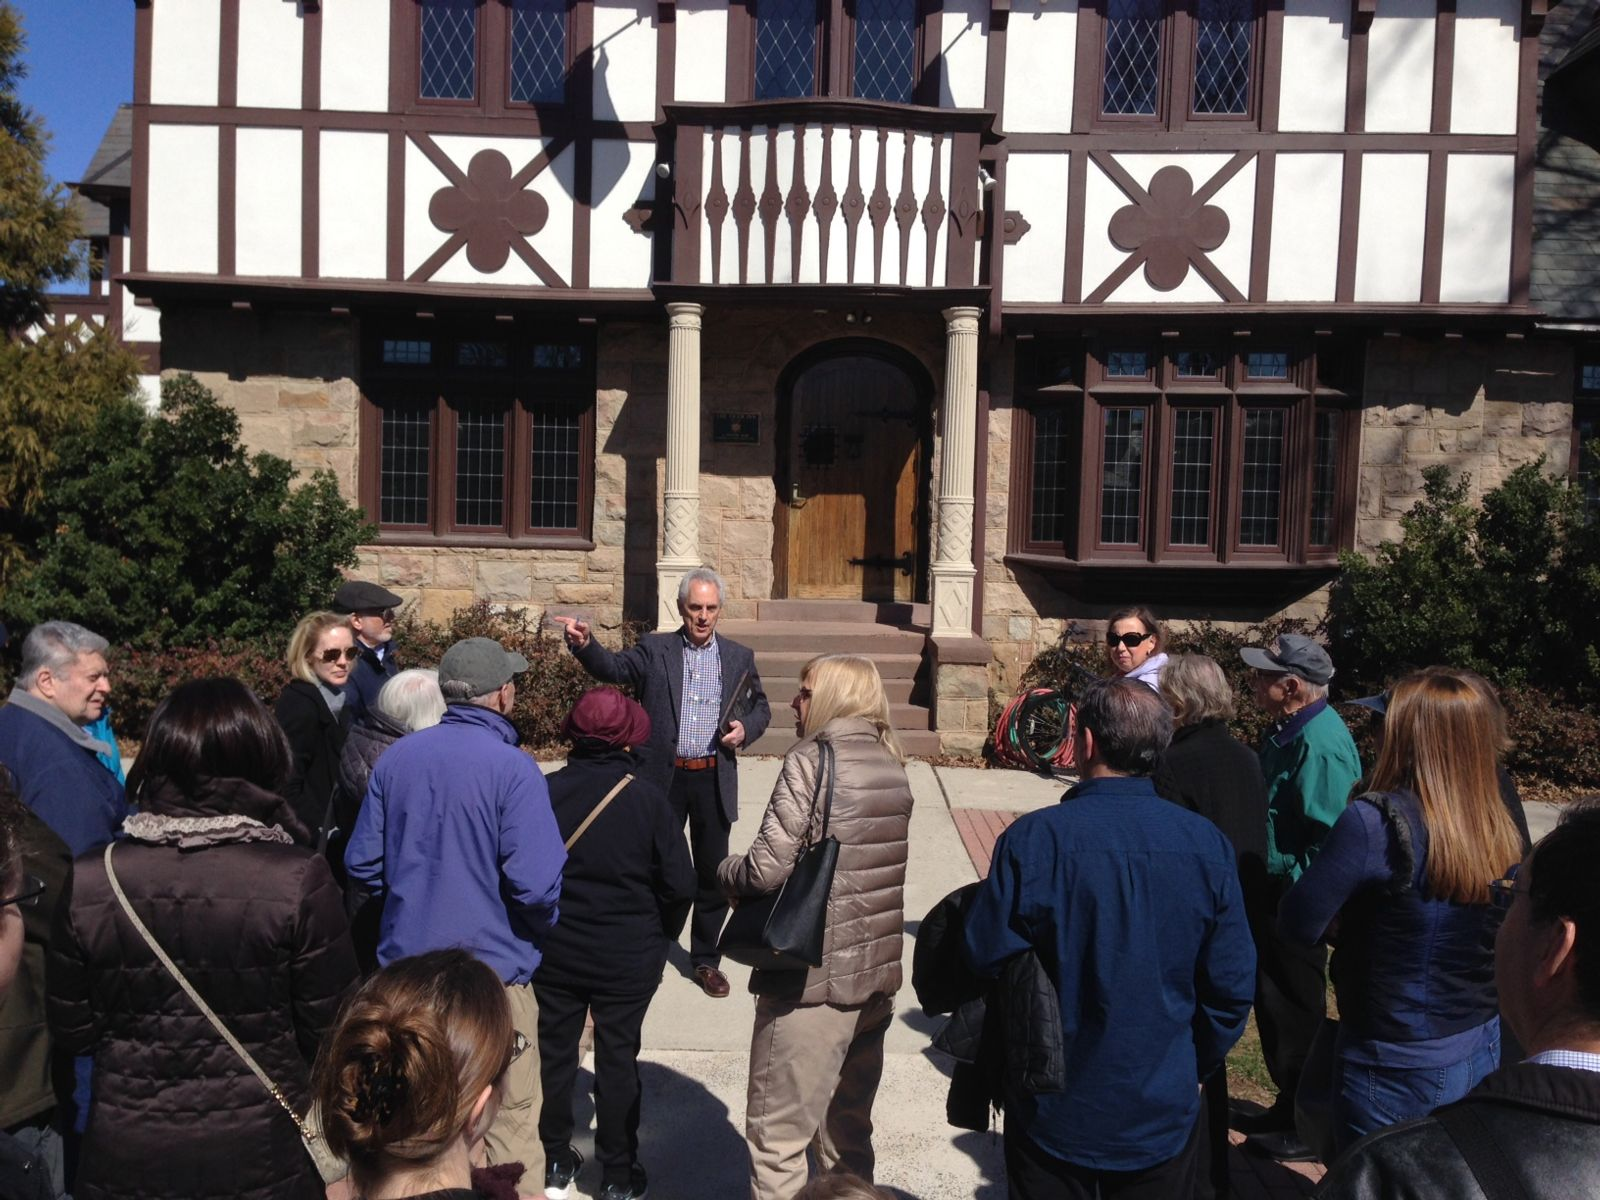 Princeton Stores And Shopping Announcements Dusk To Dawn Control Wiring Diagram For Garage The Historical Society Of Has Announced Its Fall Walking Tour Schedule Which Features A Variety Programs Participants Learn About